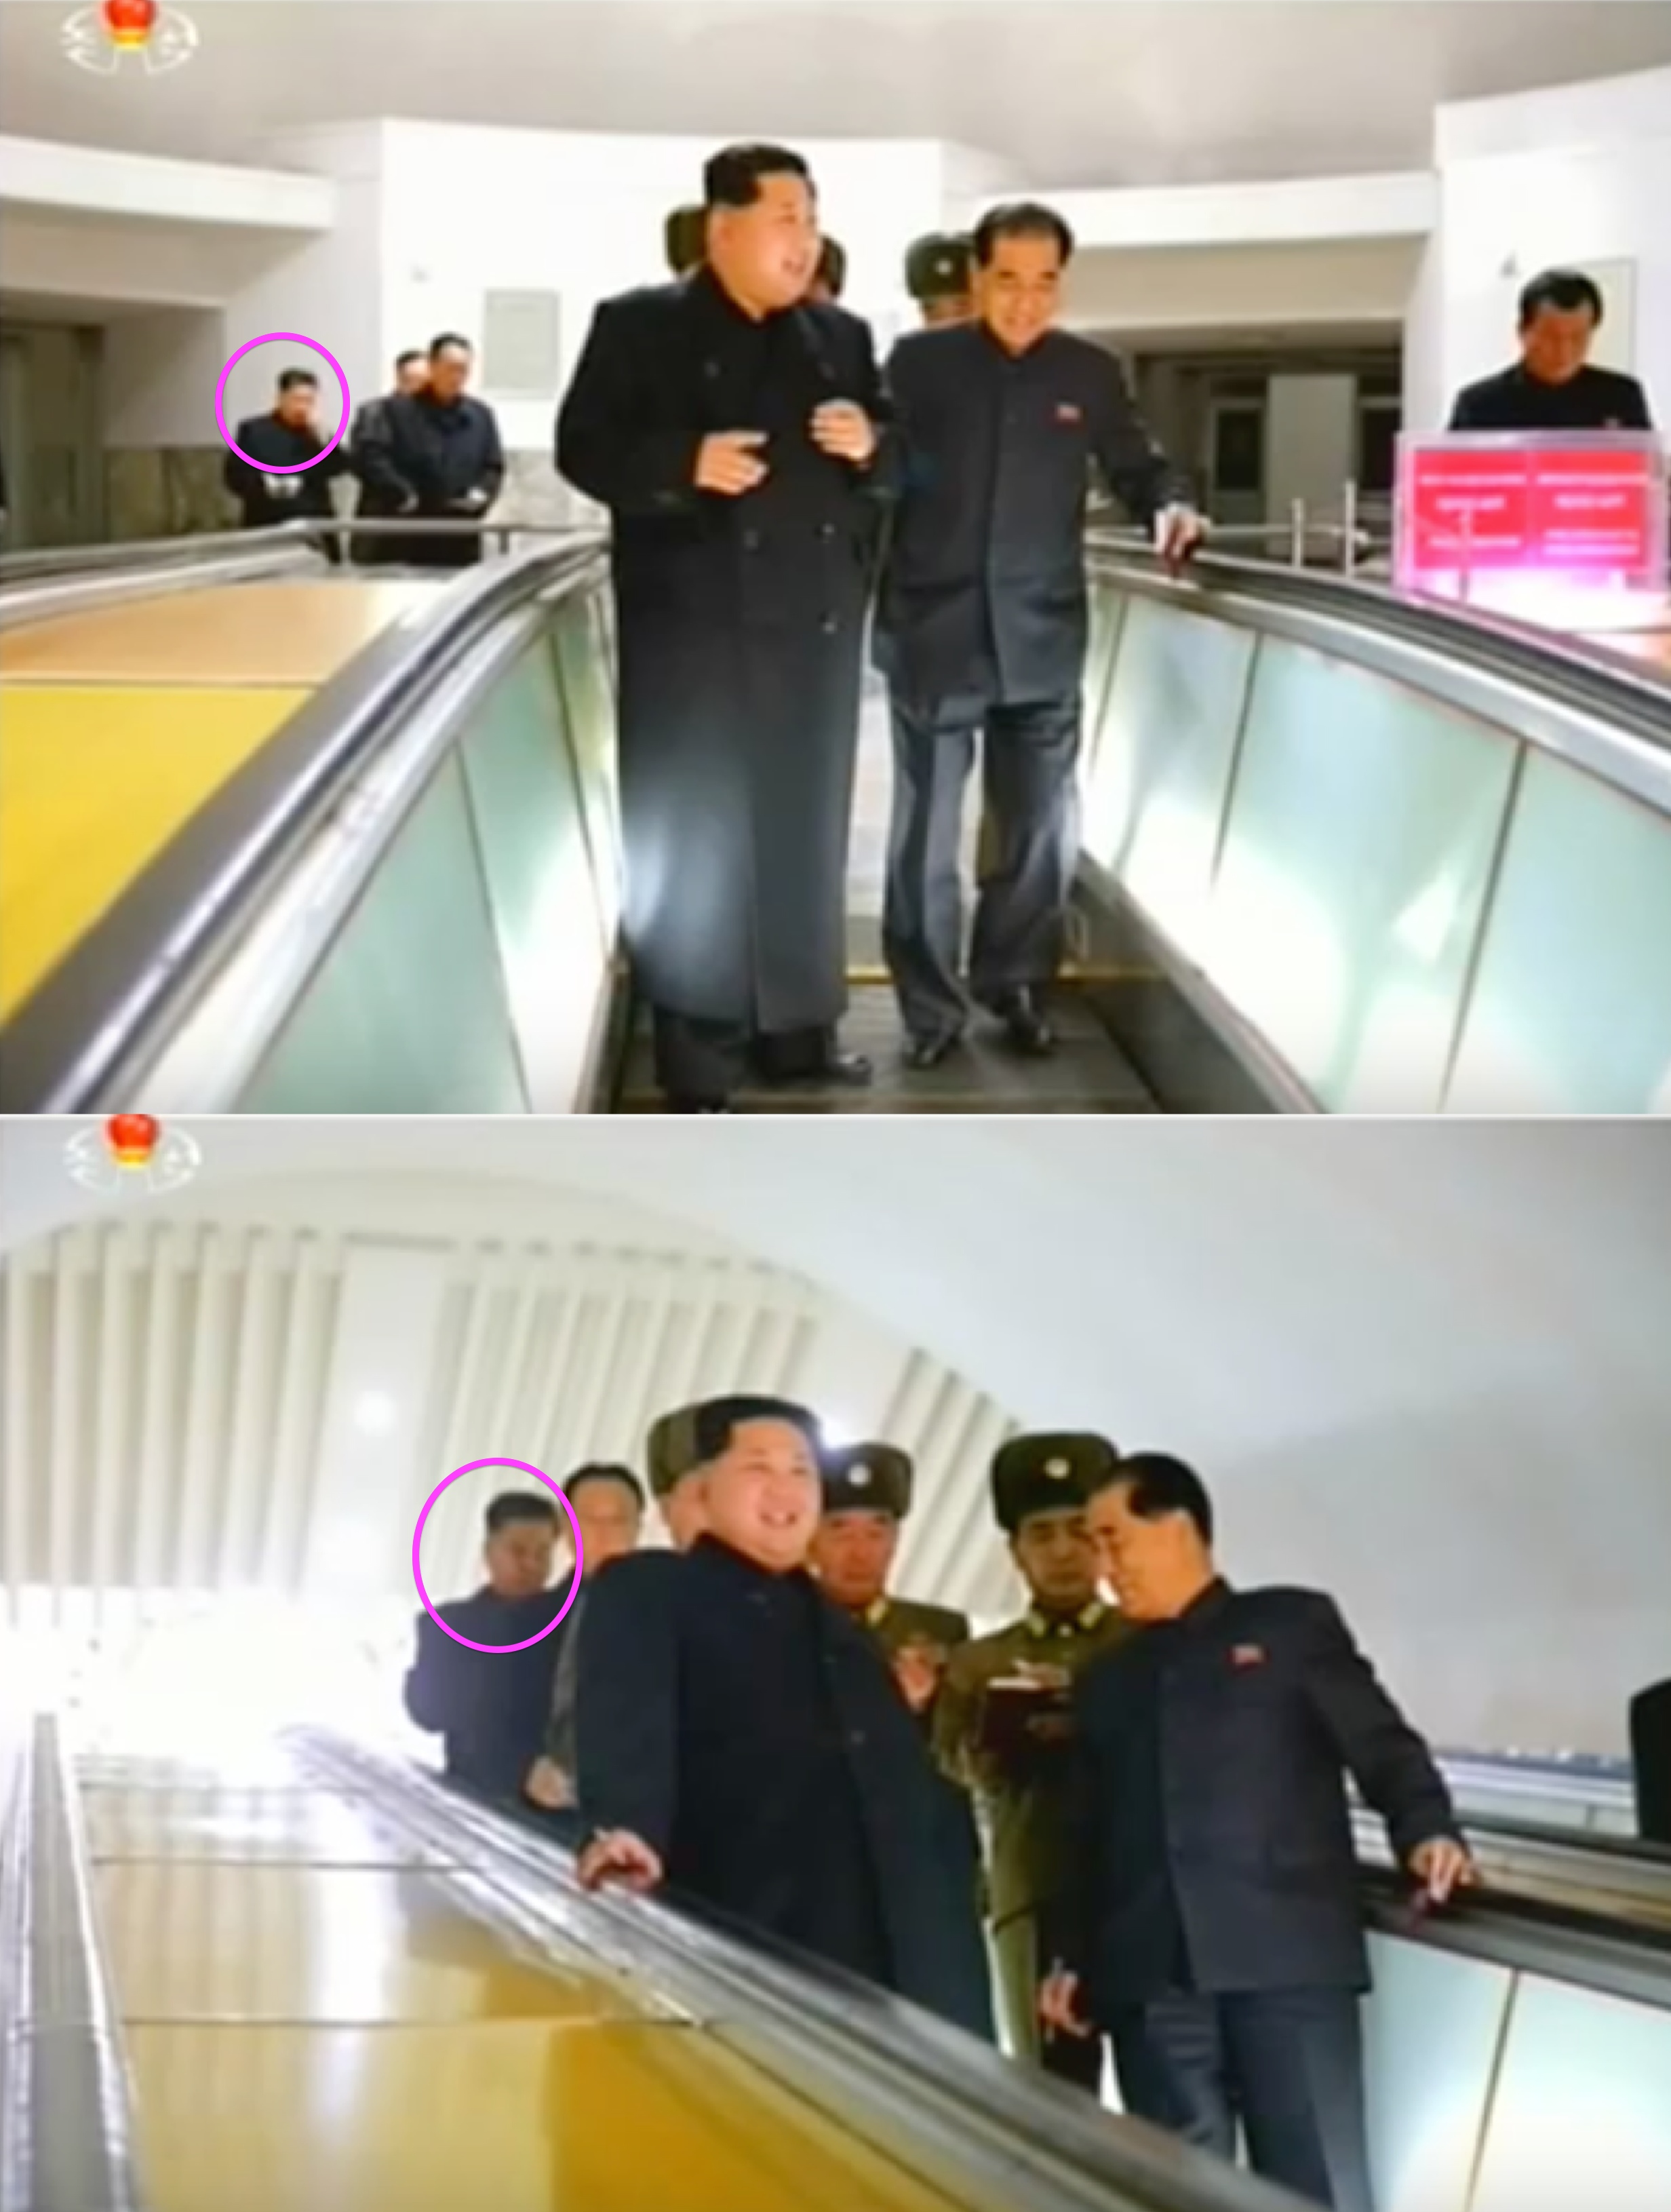 Han Kwang Sang (annotated) attends Jong Un's test riding of a new subway car in central Pyongyang on November 19, 2015 (Photos: KCTV).